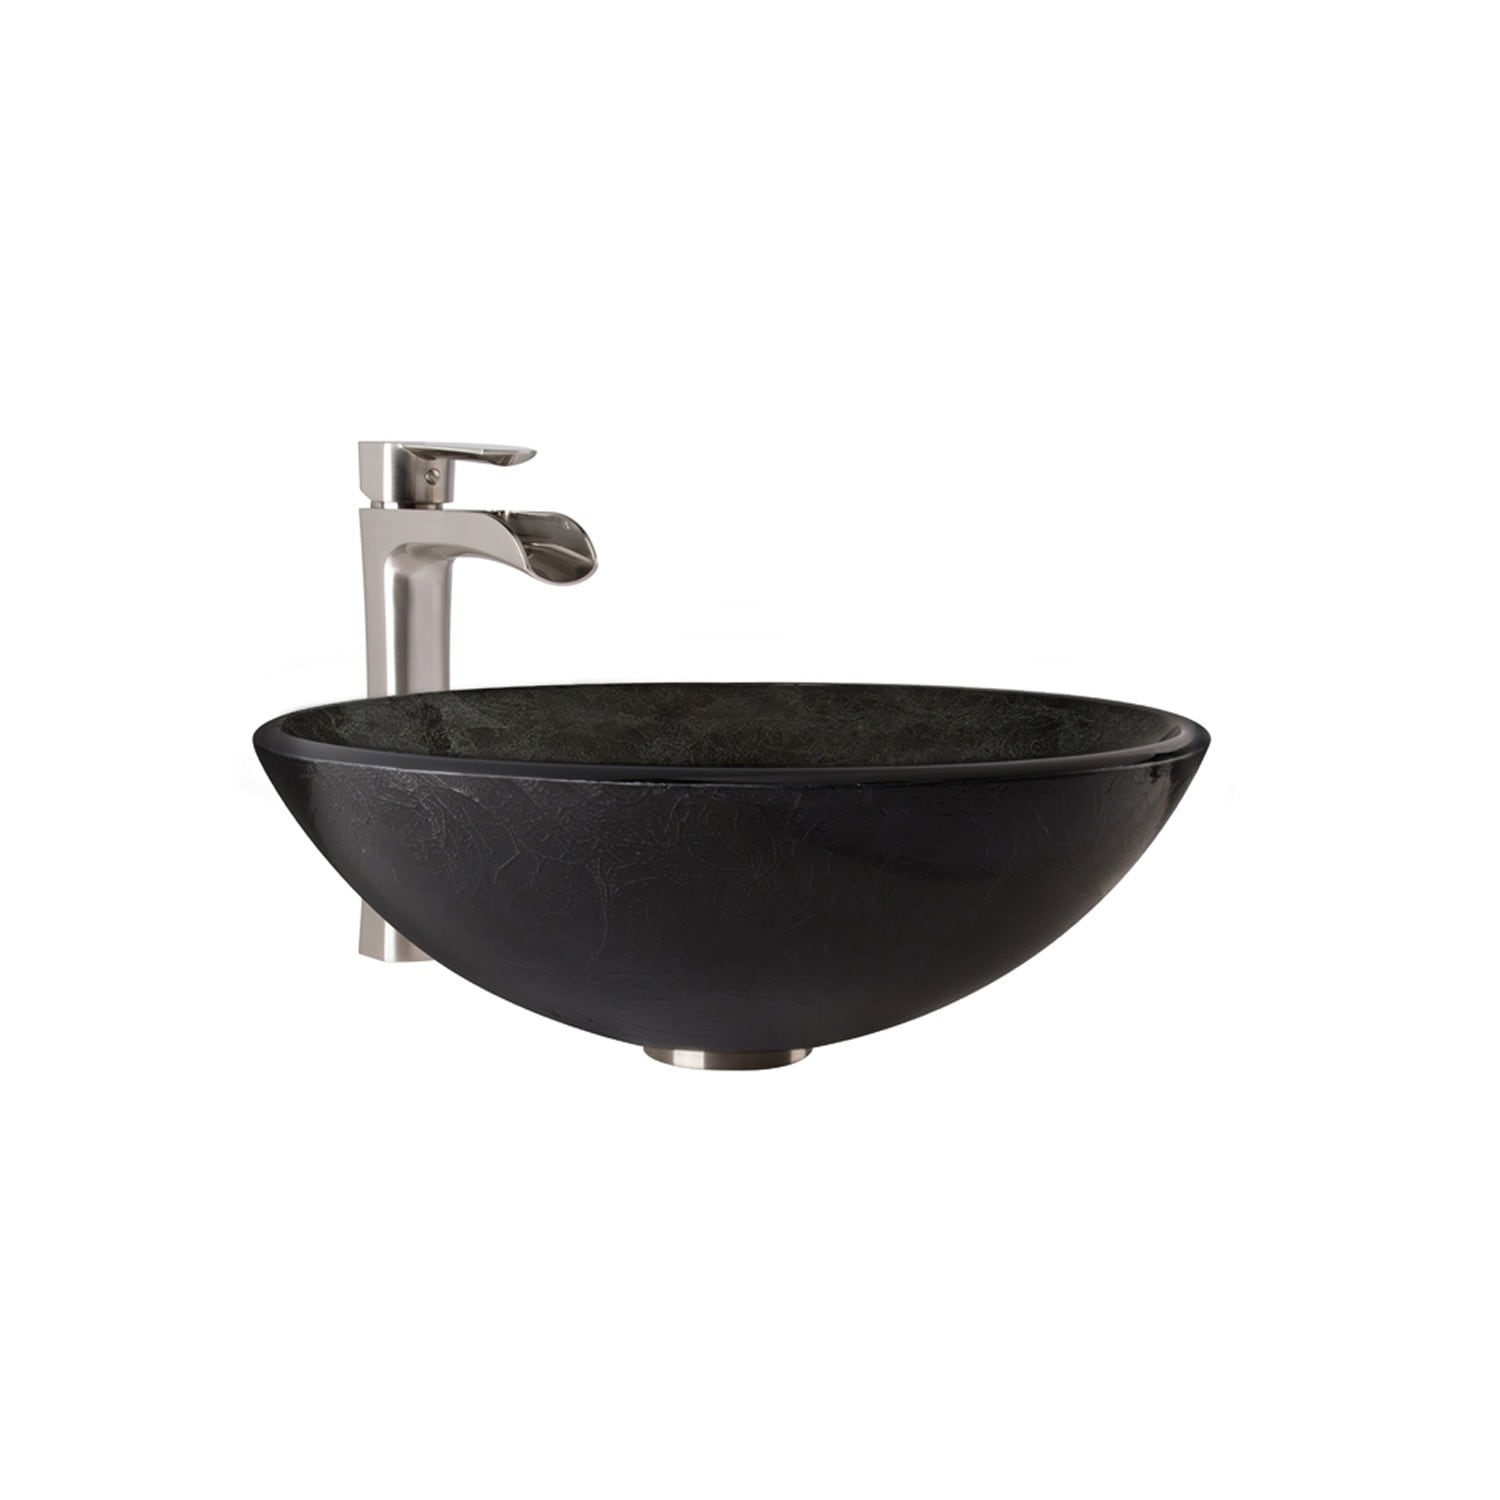 Shop VIGO Gray Onyx Glass Vessel Bathroom Sink and Niko Faucet Set ...